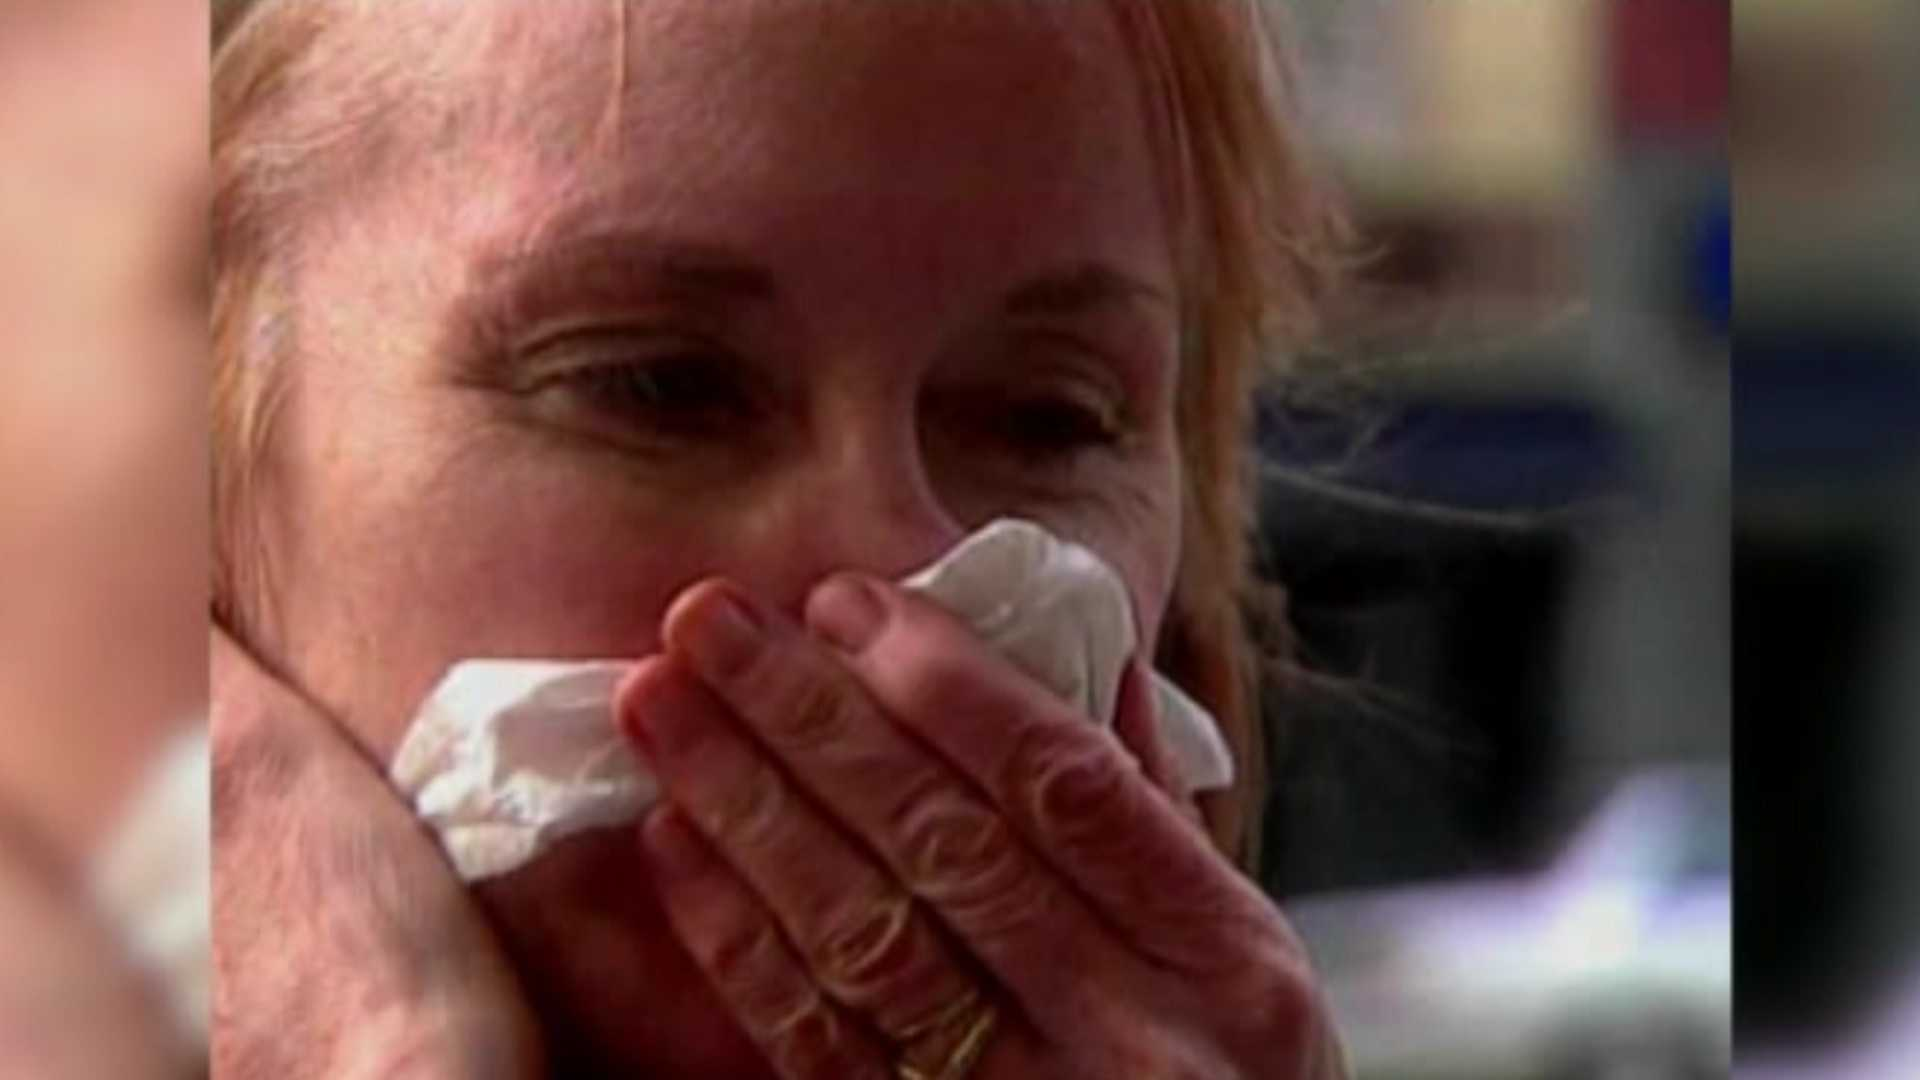 011013 Dozens die from flu, agencies encourage vaccination - img